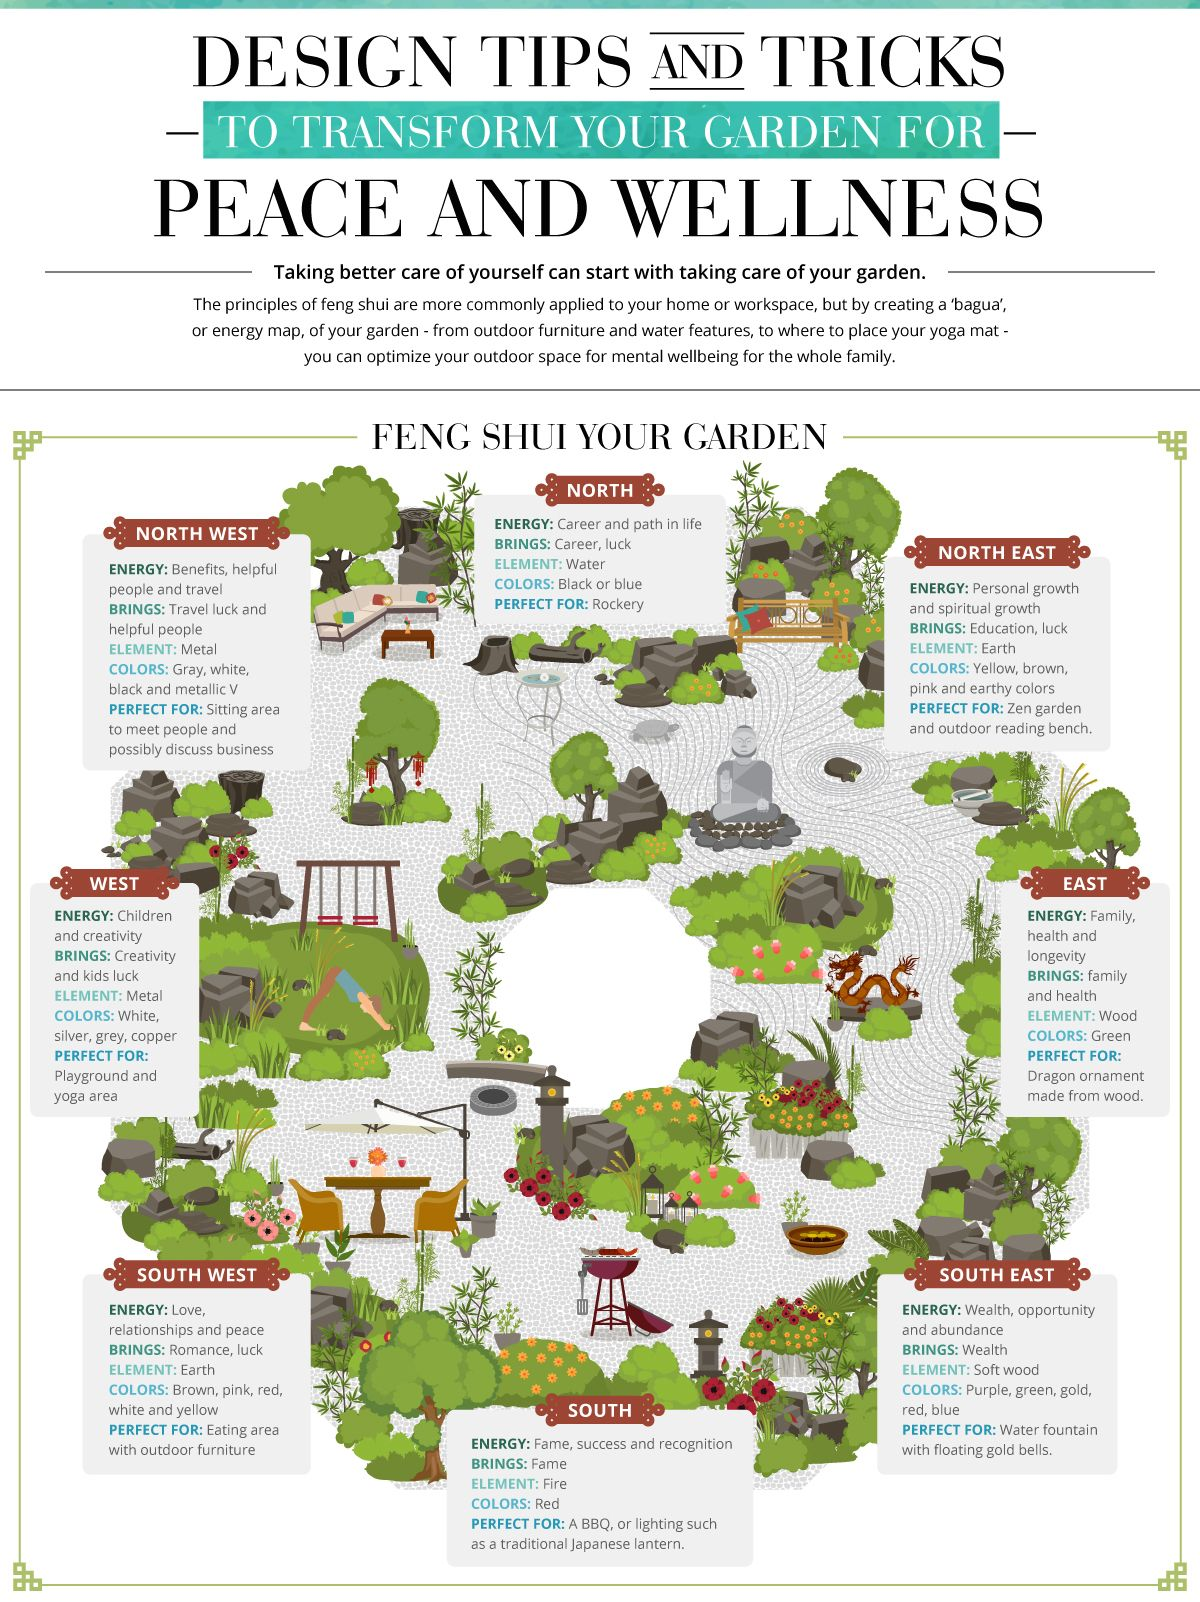 Genial Feng Shui Applied To Landscape Design Can Improve Well Being